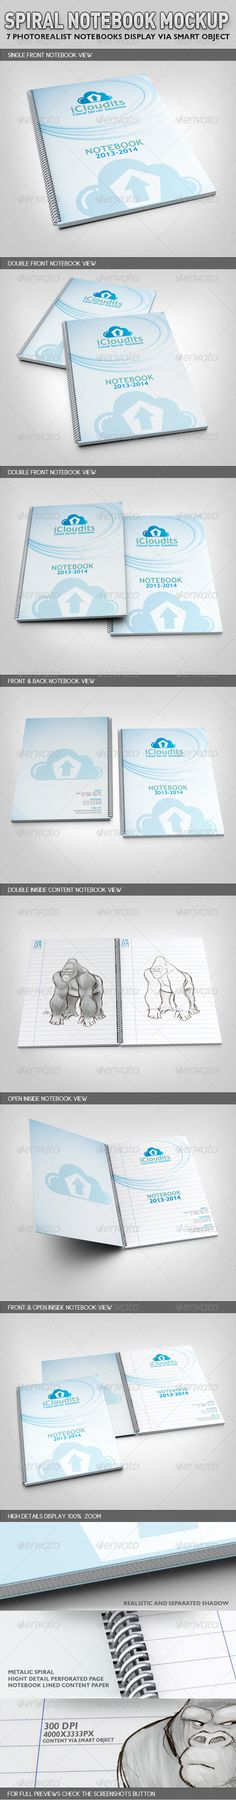 Spiral Notebook Mock-Up  #3d #book #graphic • Available here → http://graphicriver.net/item/spiral-notebook-mockup/2941379?s_rank=1414&ref=pxcr